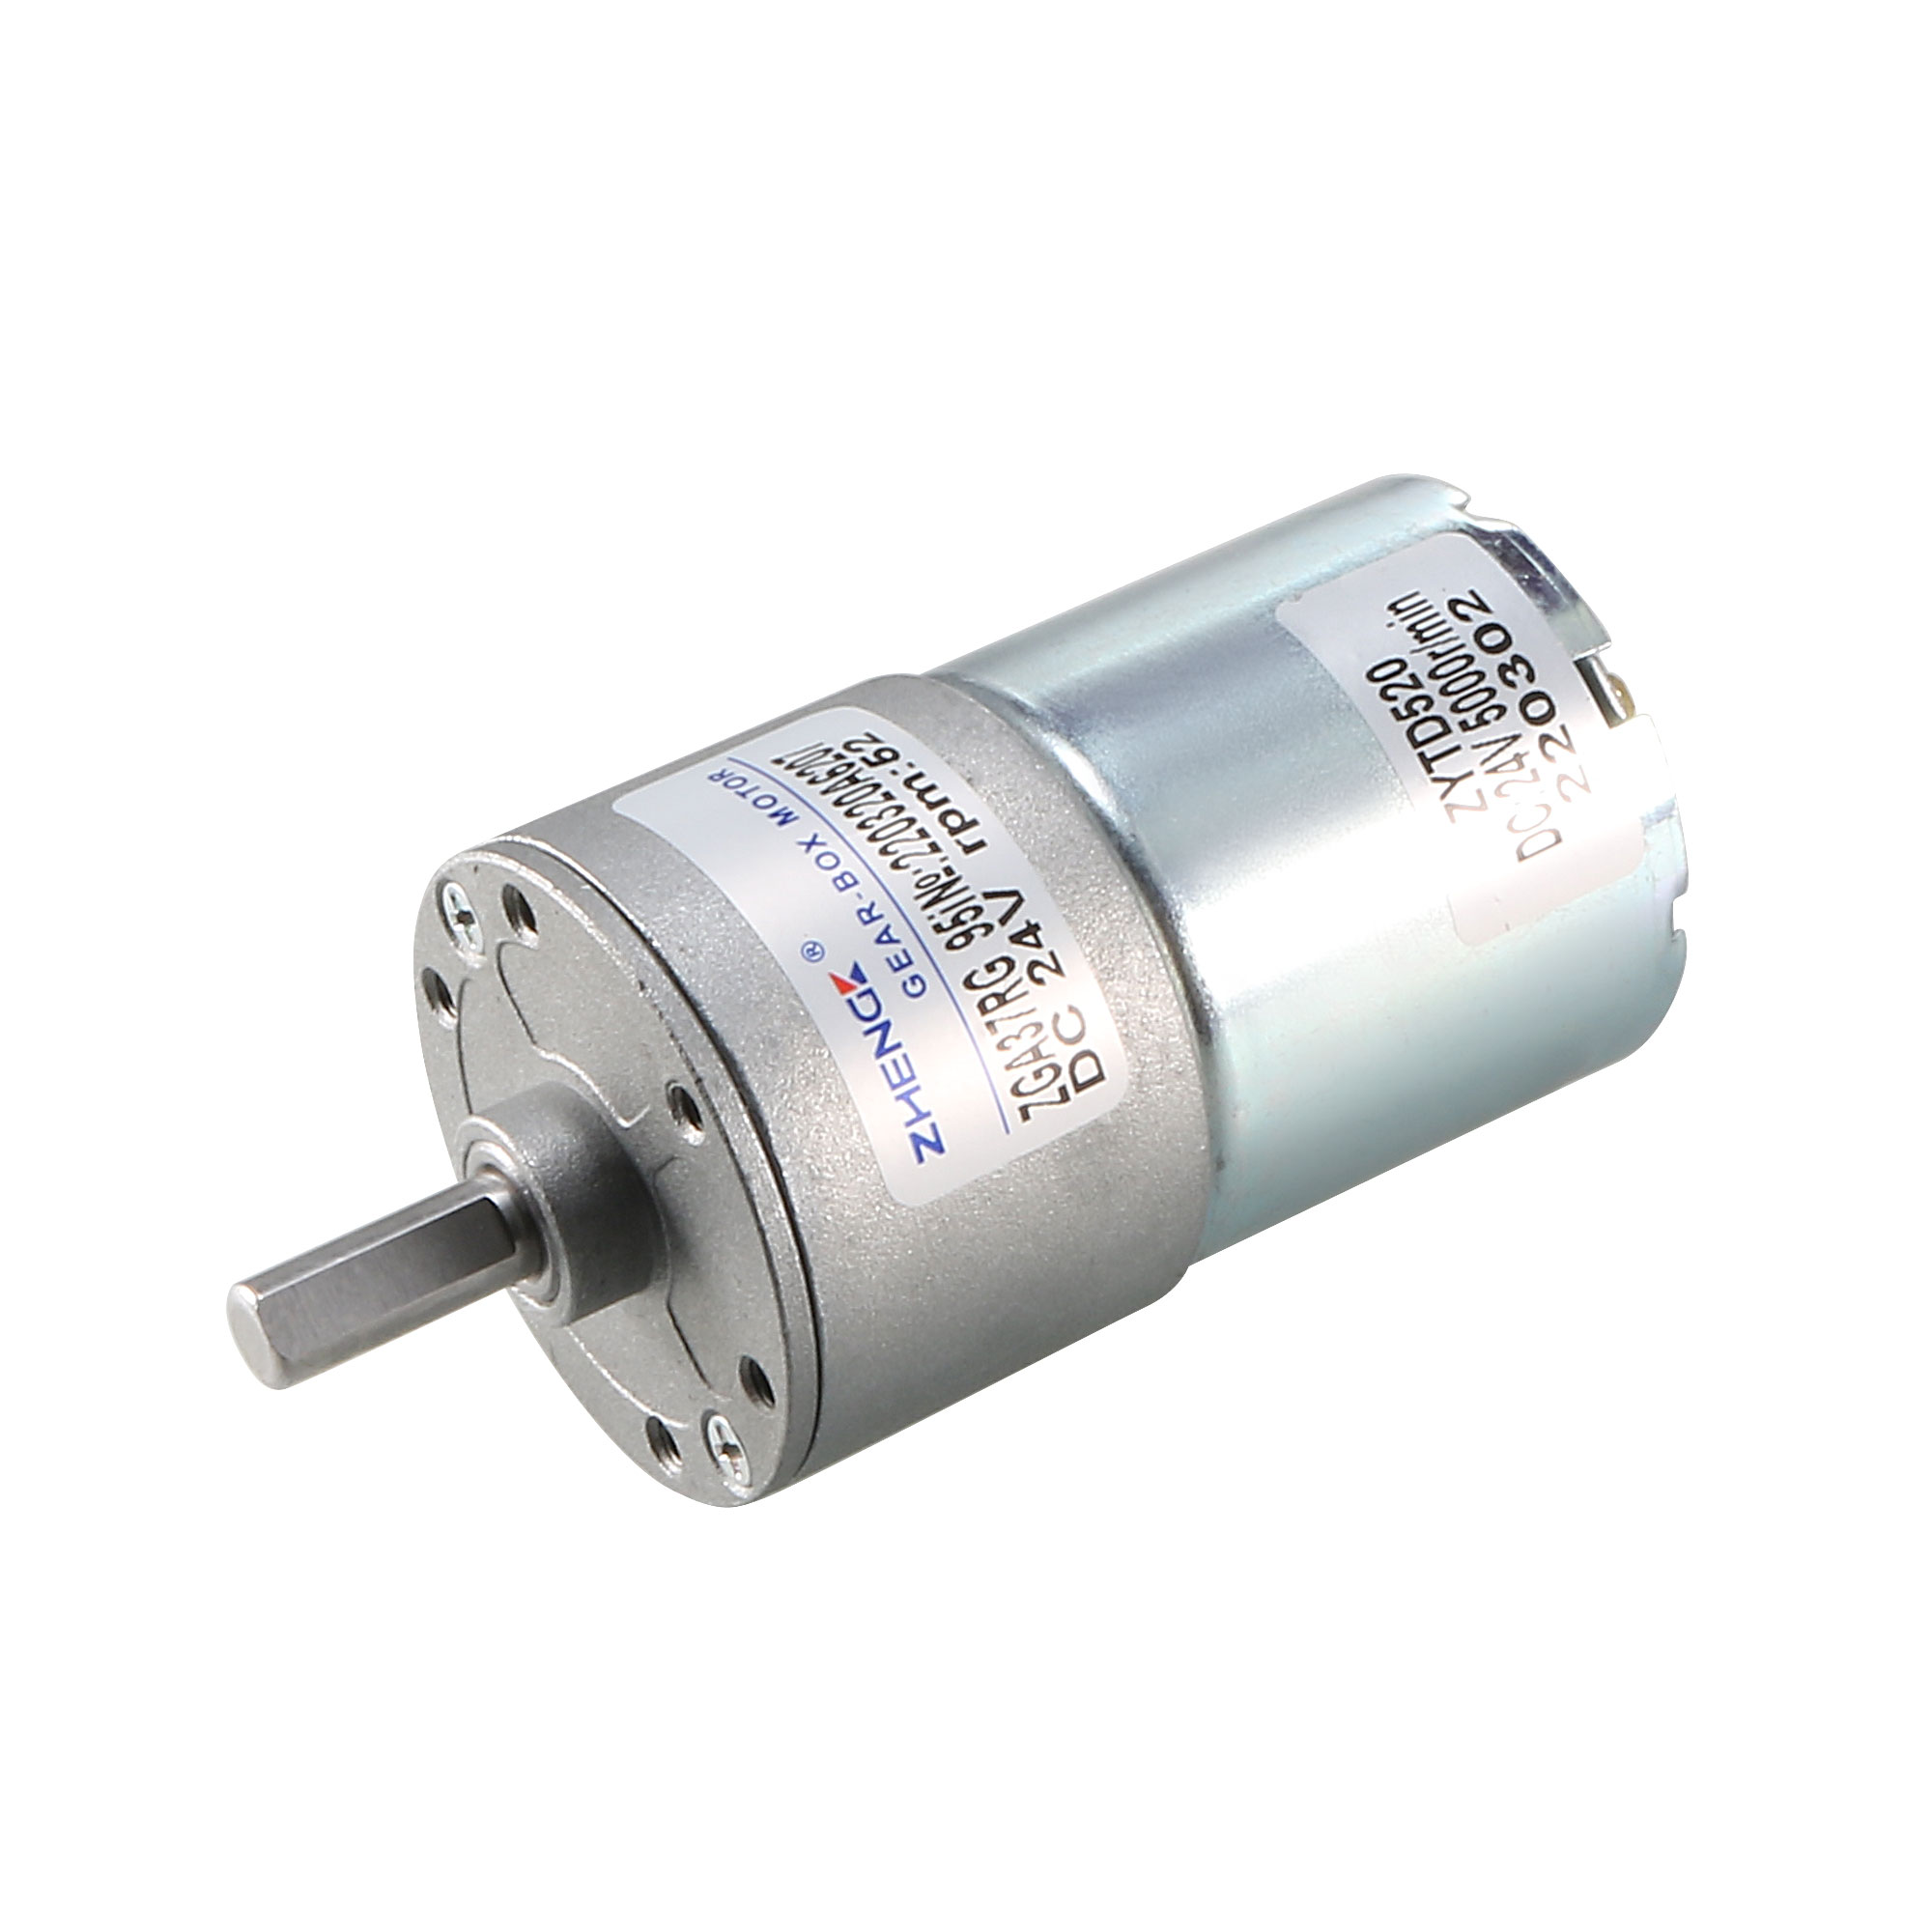 24V DC 50 RPM Gear Motor High Torque Reduction Gearbox Centric Output Shaft